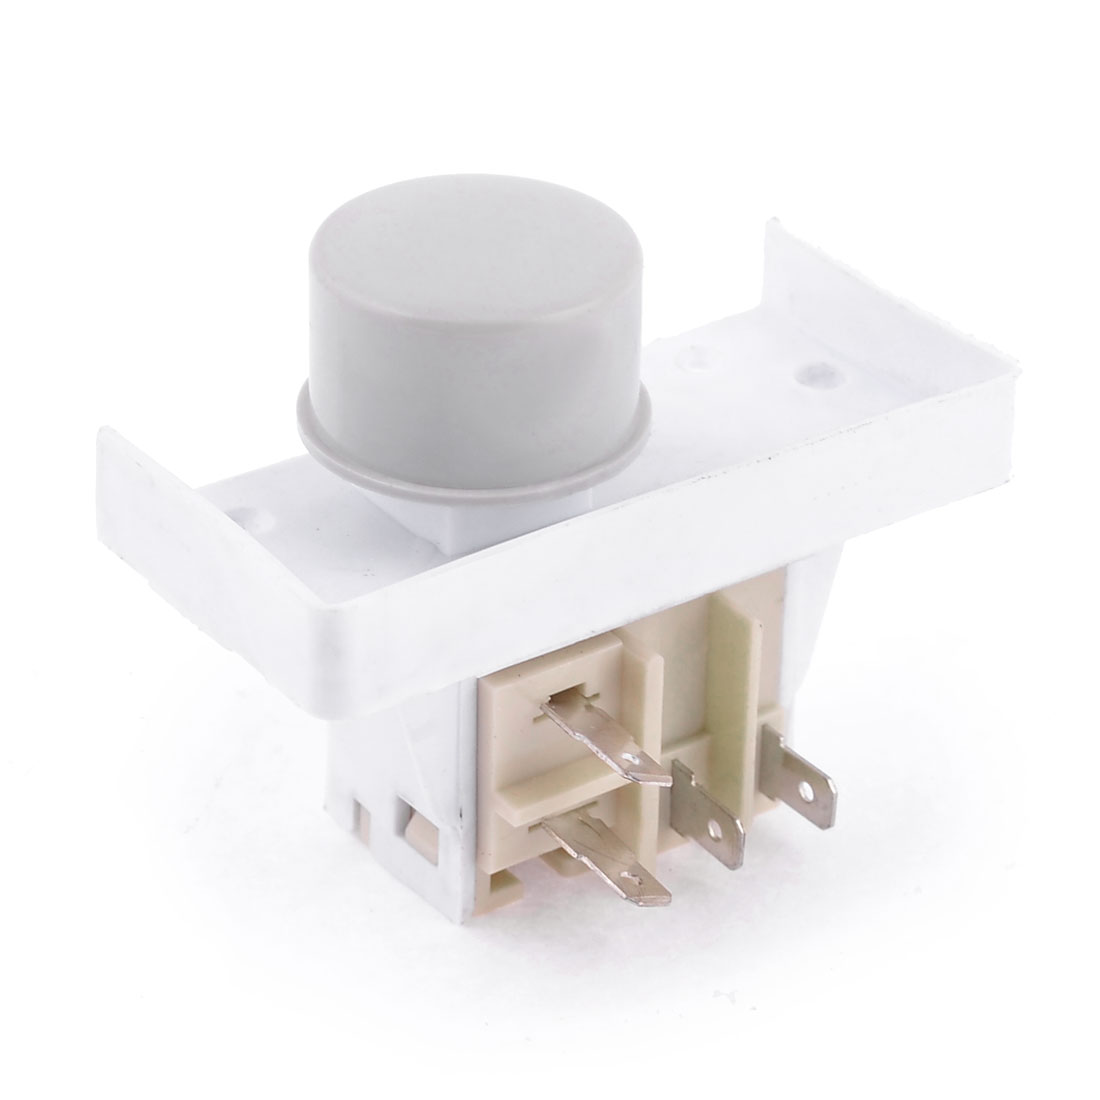 Replacement 220-240V 5A NO Round Power Switch for Washer Washing Machine